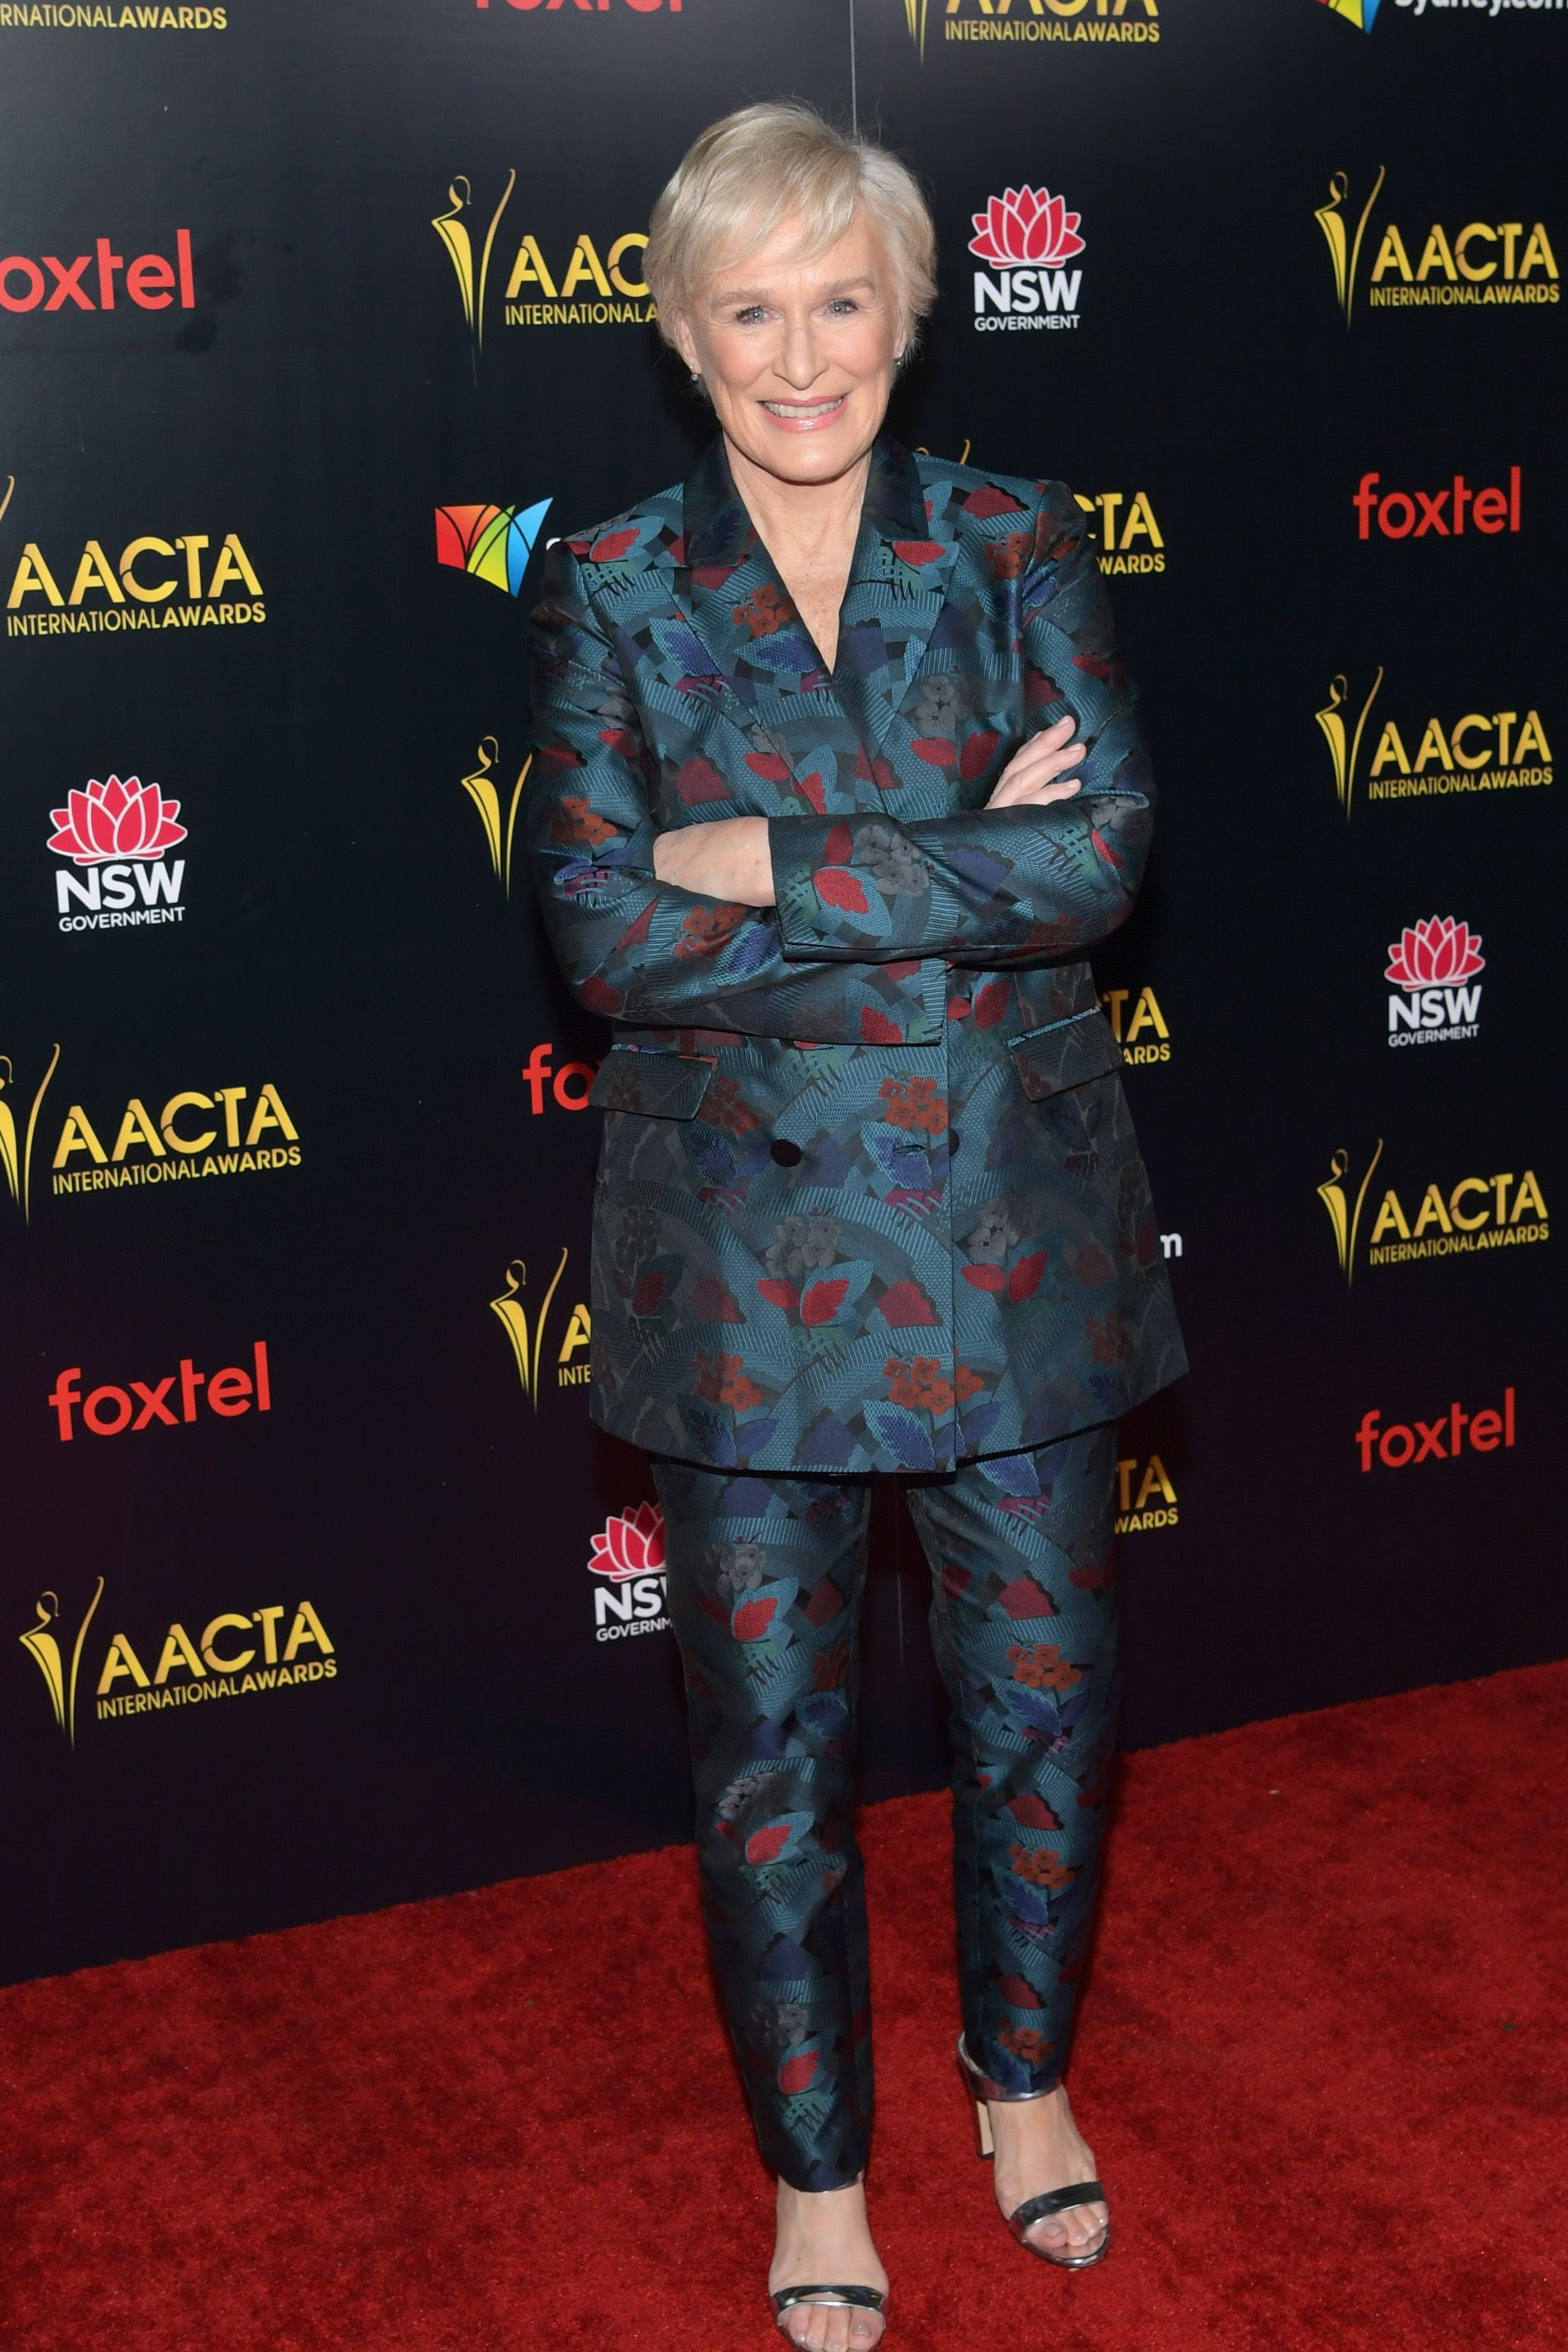 The actress struck a power pose in a turquoise printed suit and a pair of silver sandal heels at the Australian Academy of Cinema and Television Arts International Awards.